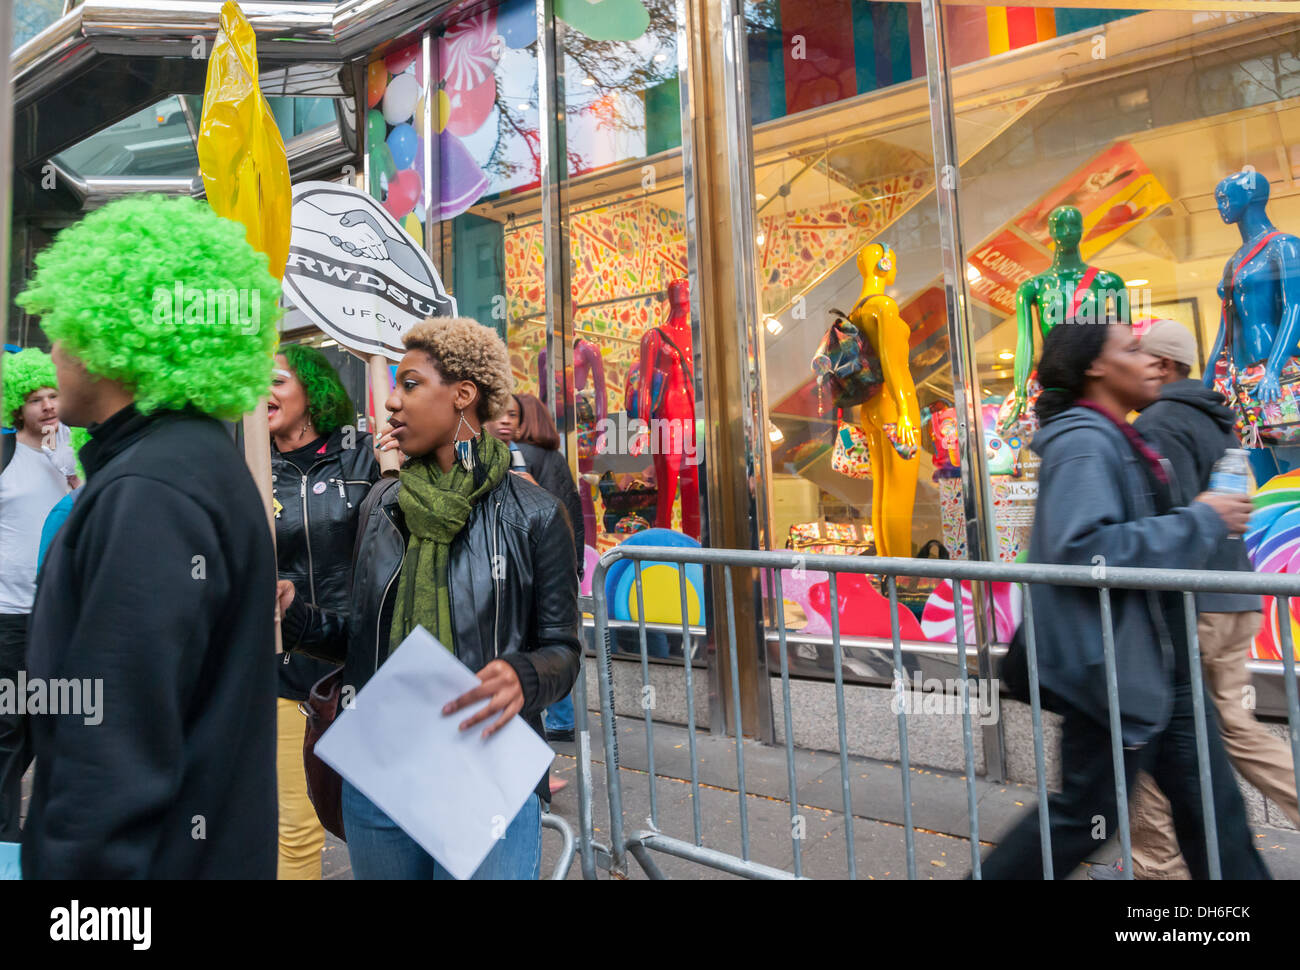 Protest in front of Dylan's Candy Bar in the Upper East Side neighborhood of New York Stock Photo